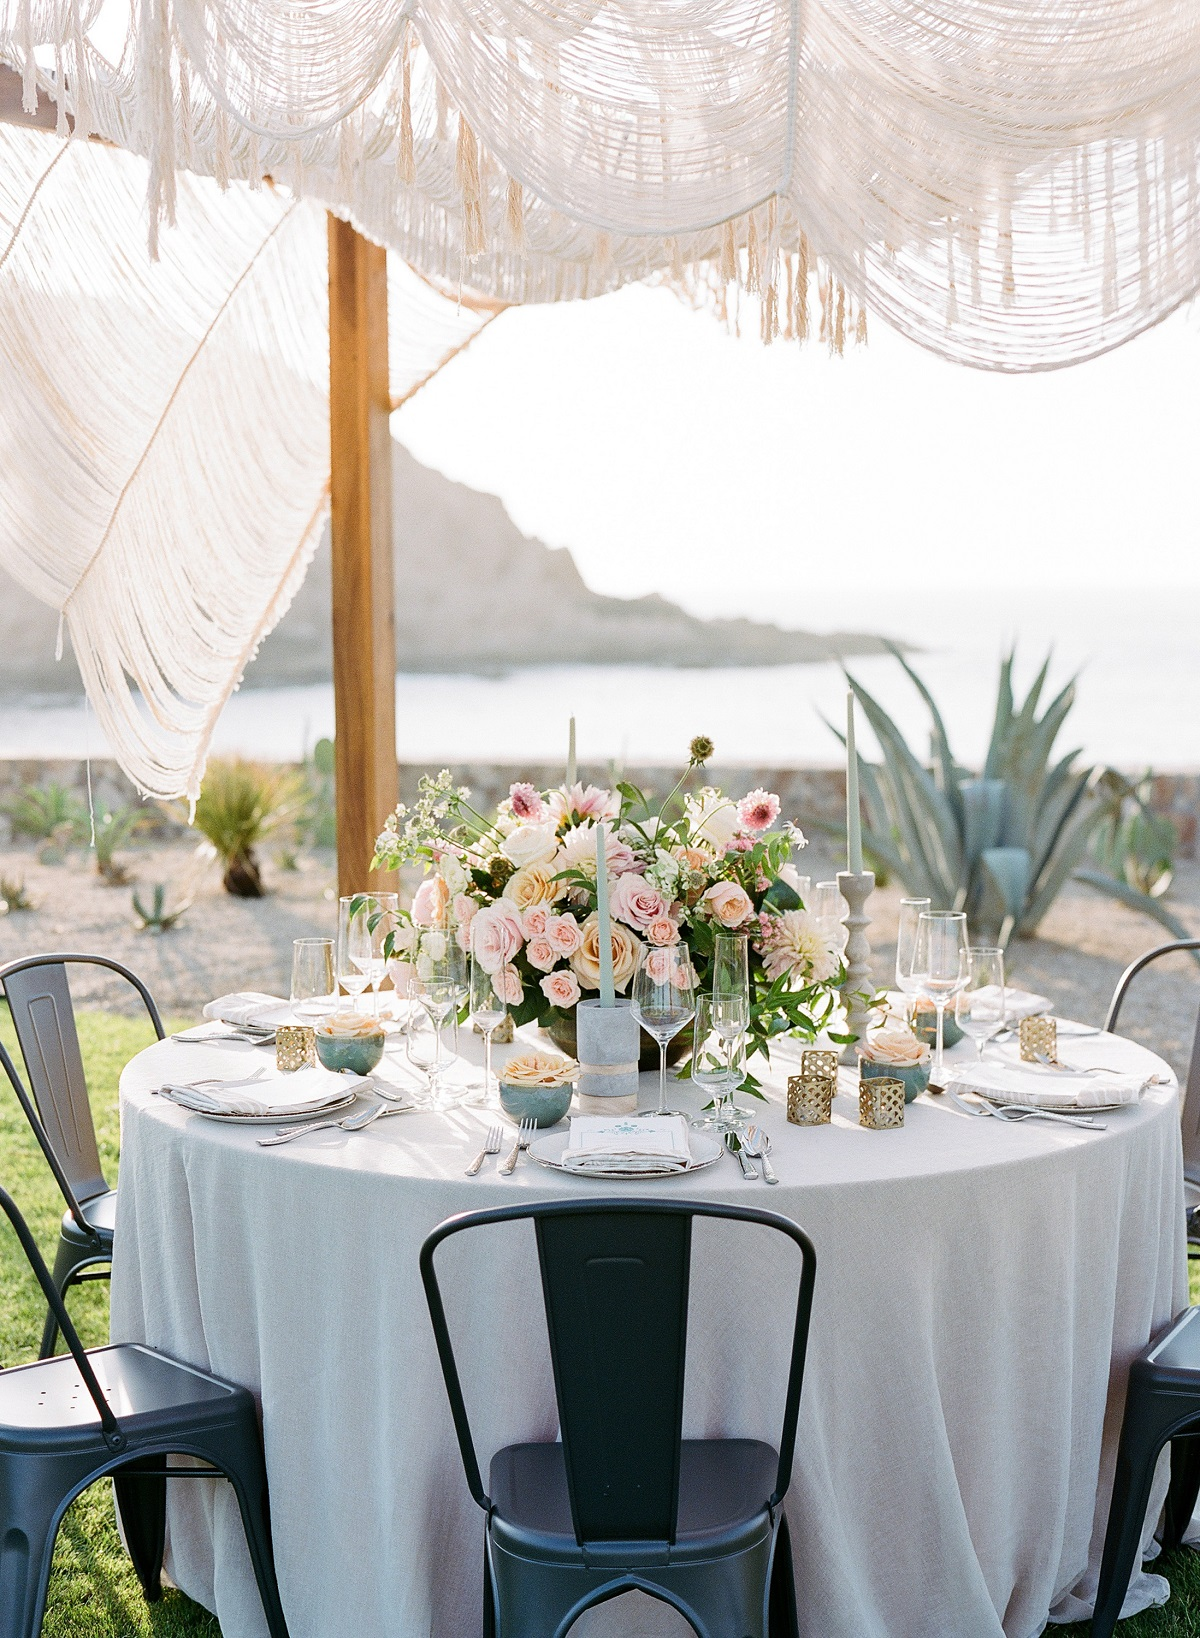 event design cabo elena damy wedding planners los cabos beach weddings natural setting